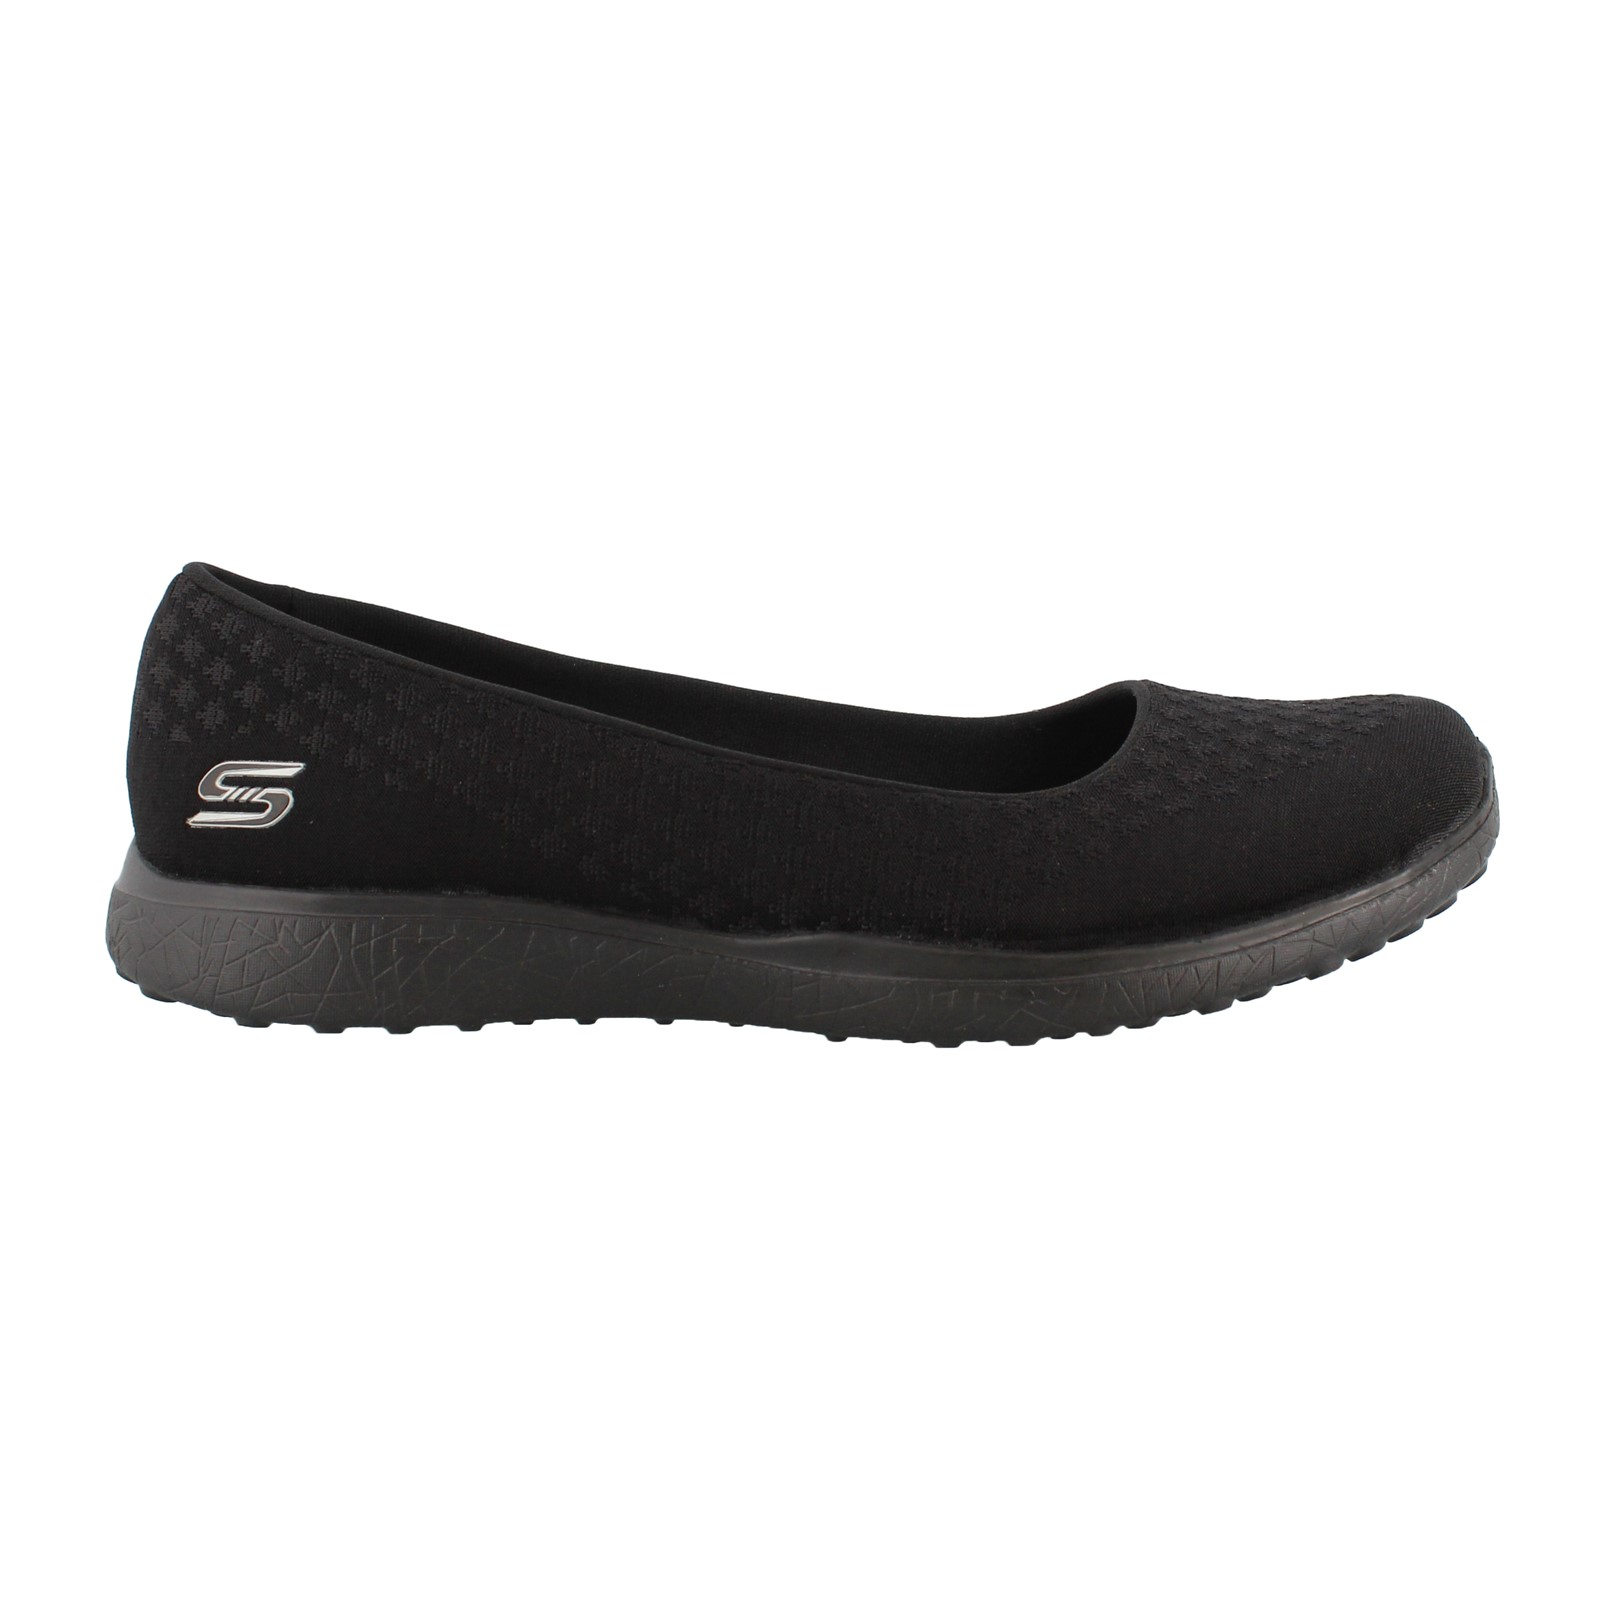 Skechers Microburst One Up Black Womens Slipon Shoes